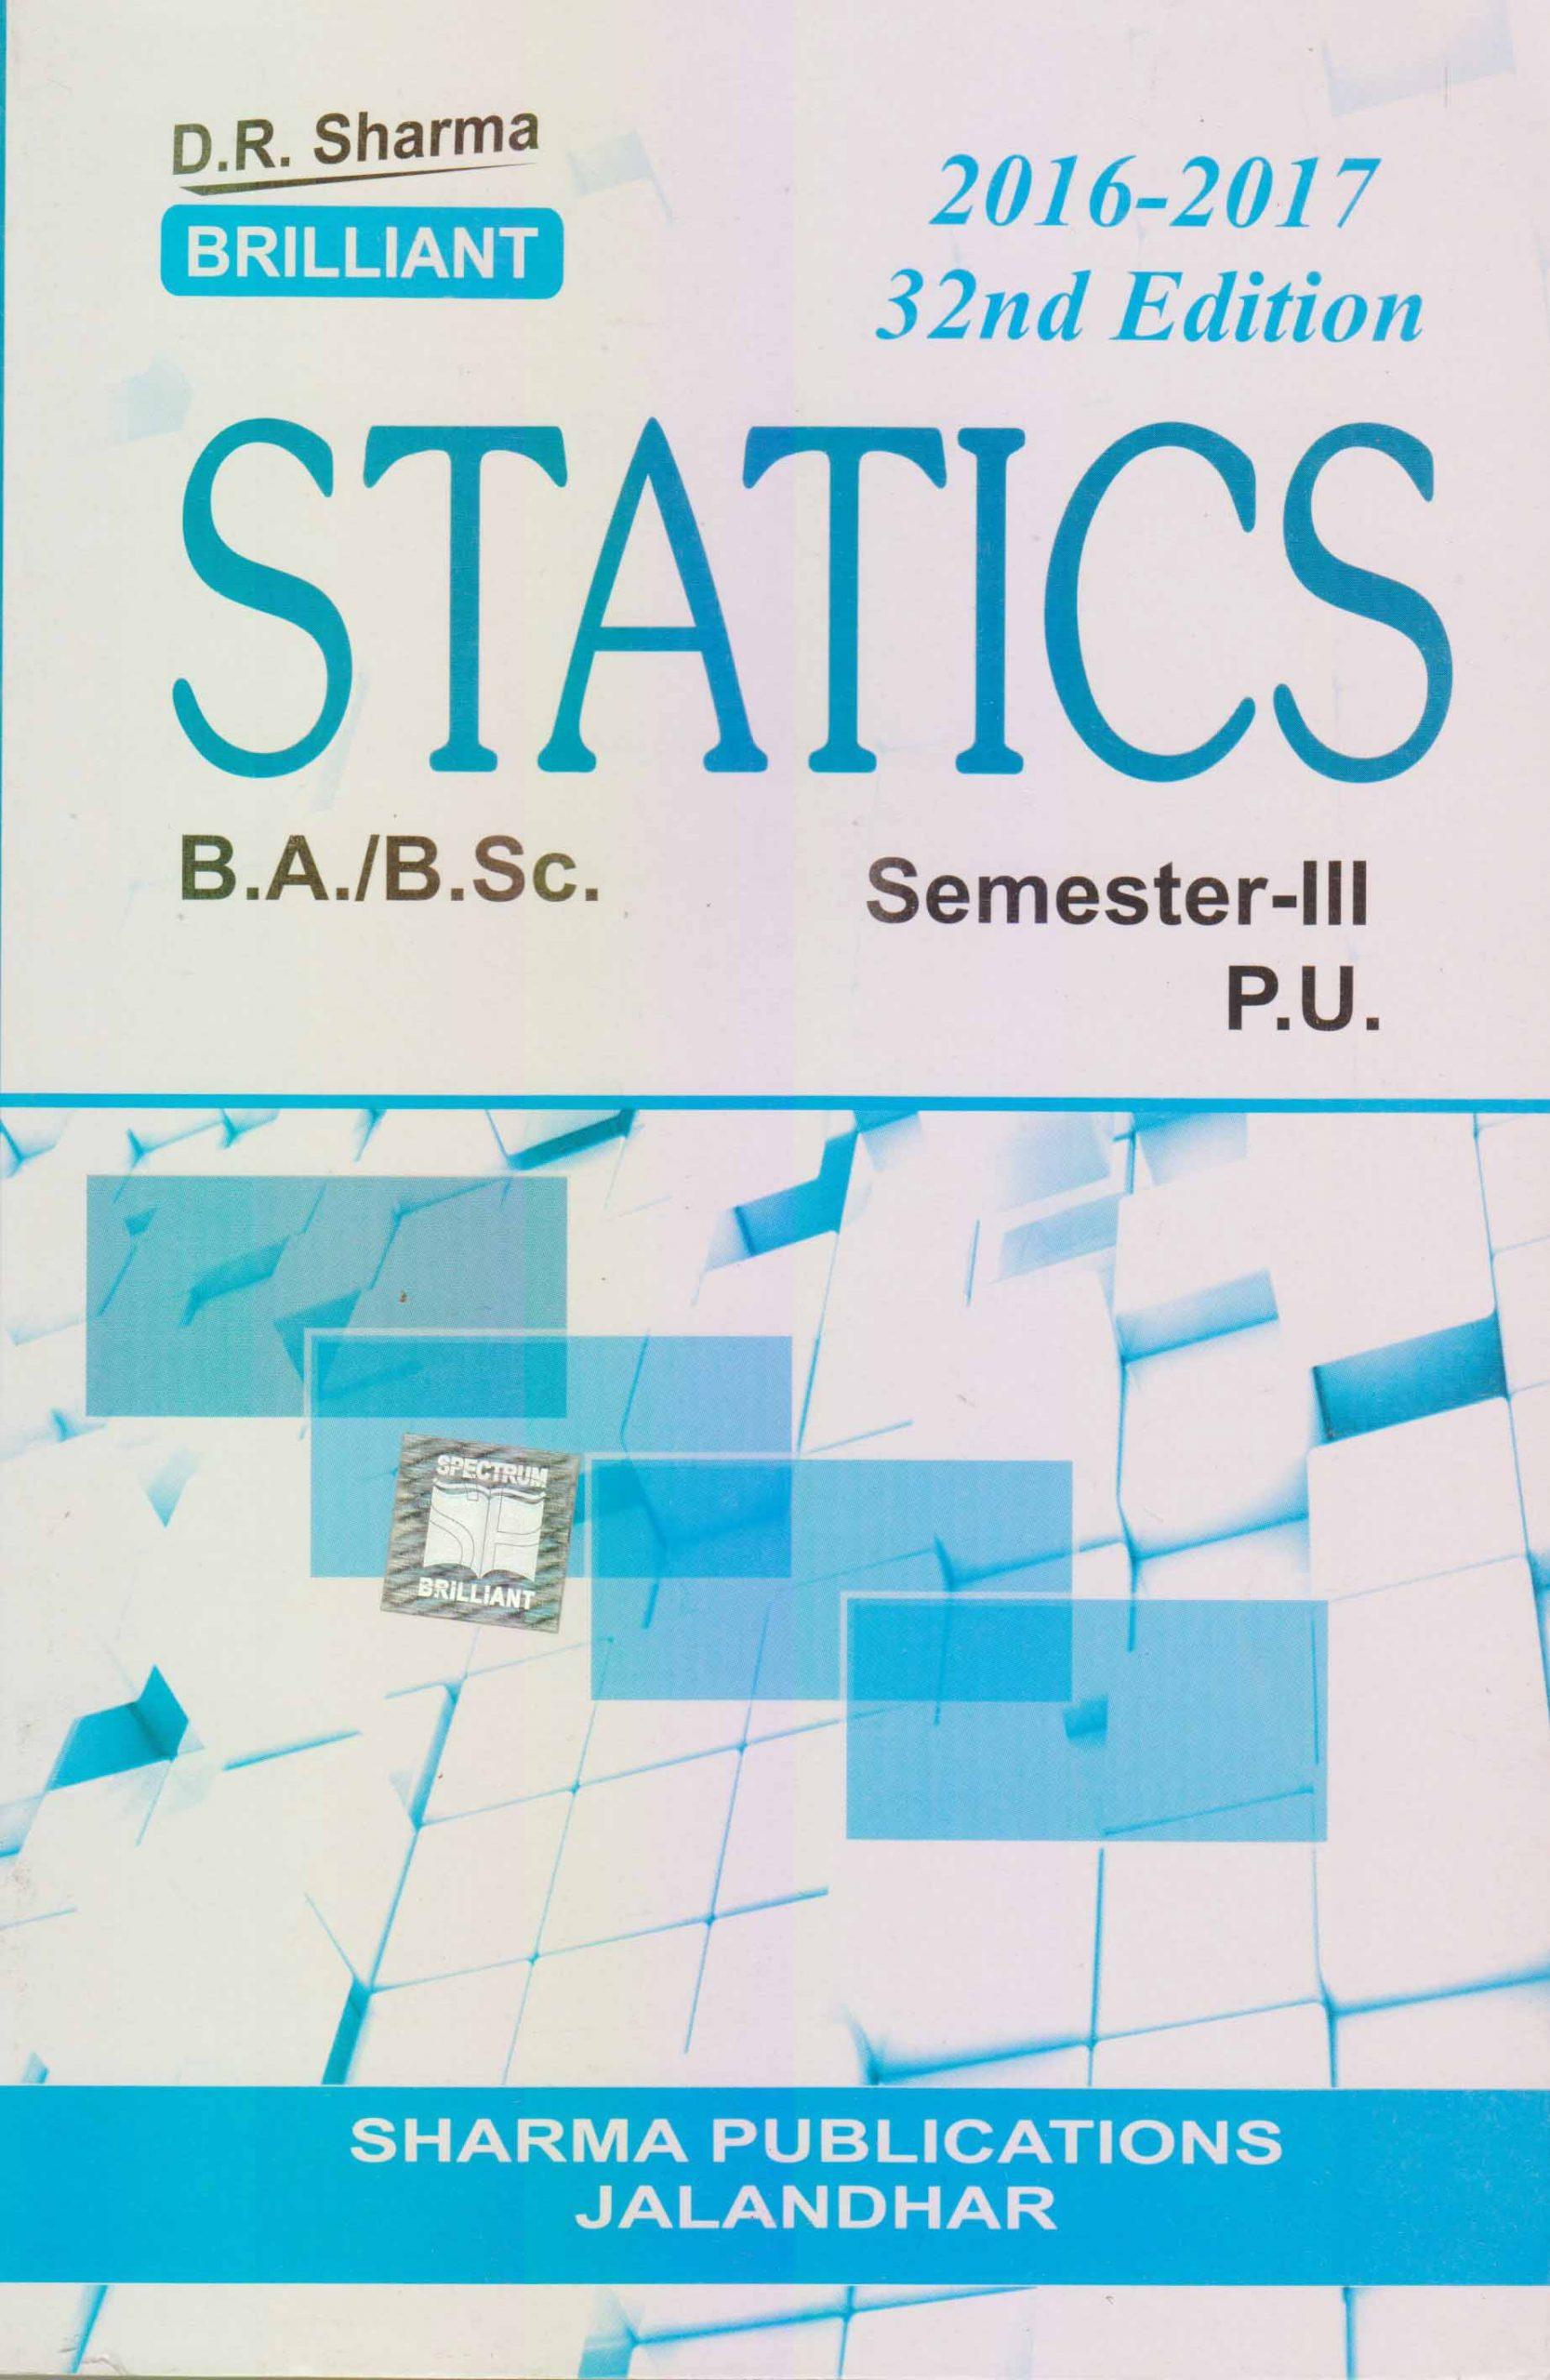 Statics for B.A. / B.Sc., Sem. 3 (P.U.) by D.R. Sharma